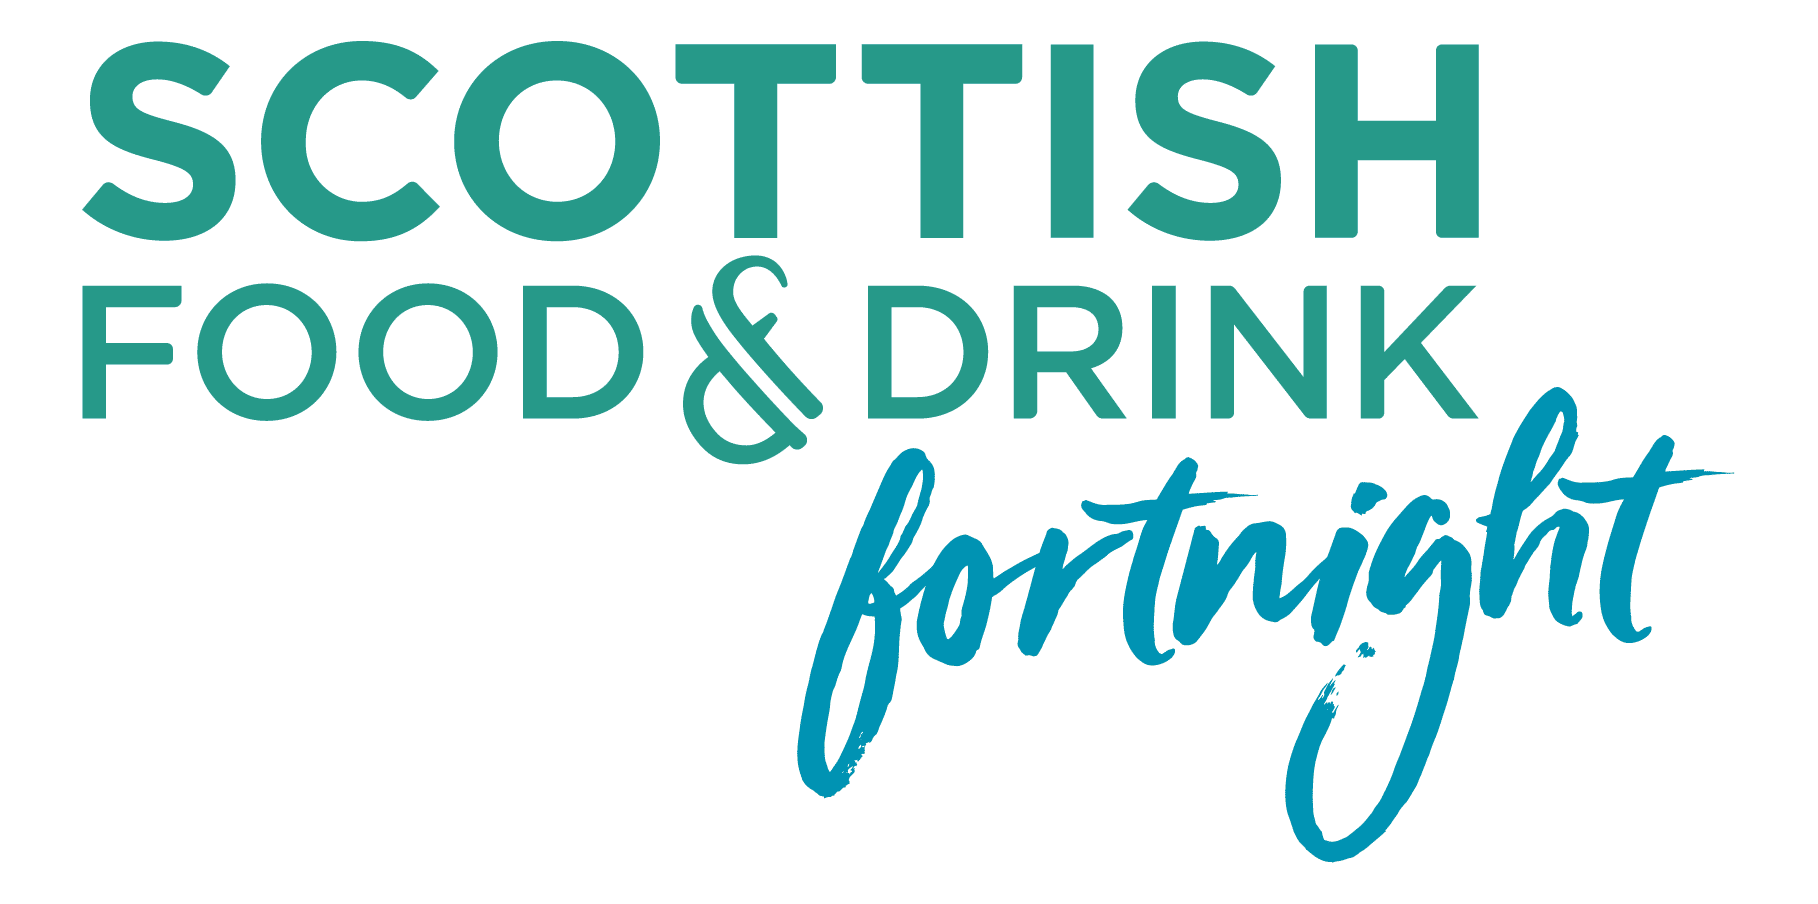 Food and Drink Fortnight 2021!